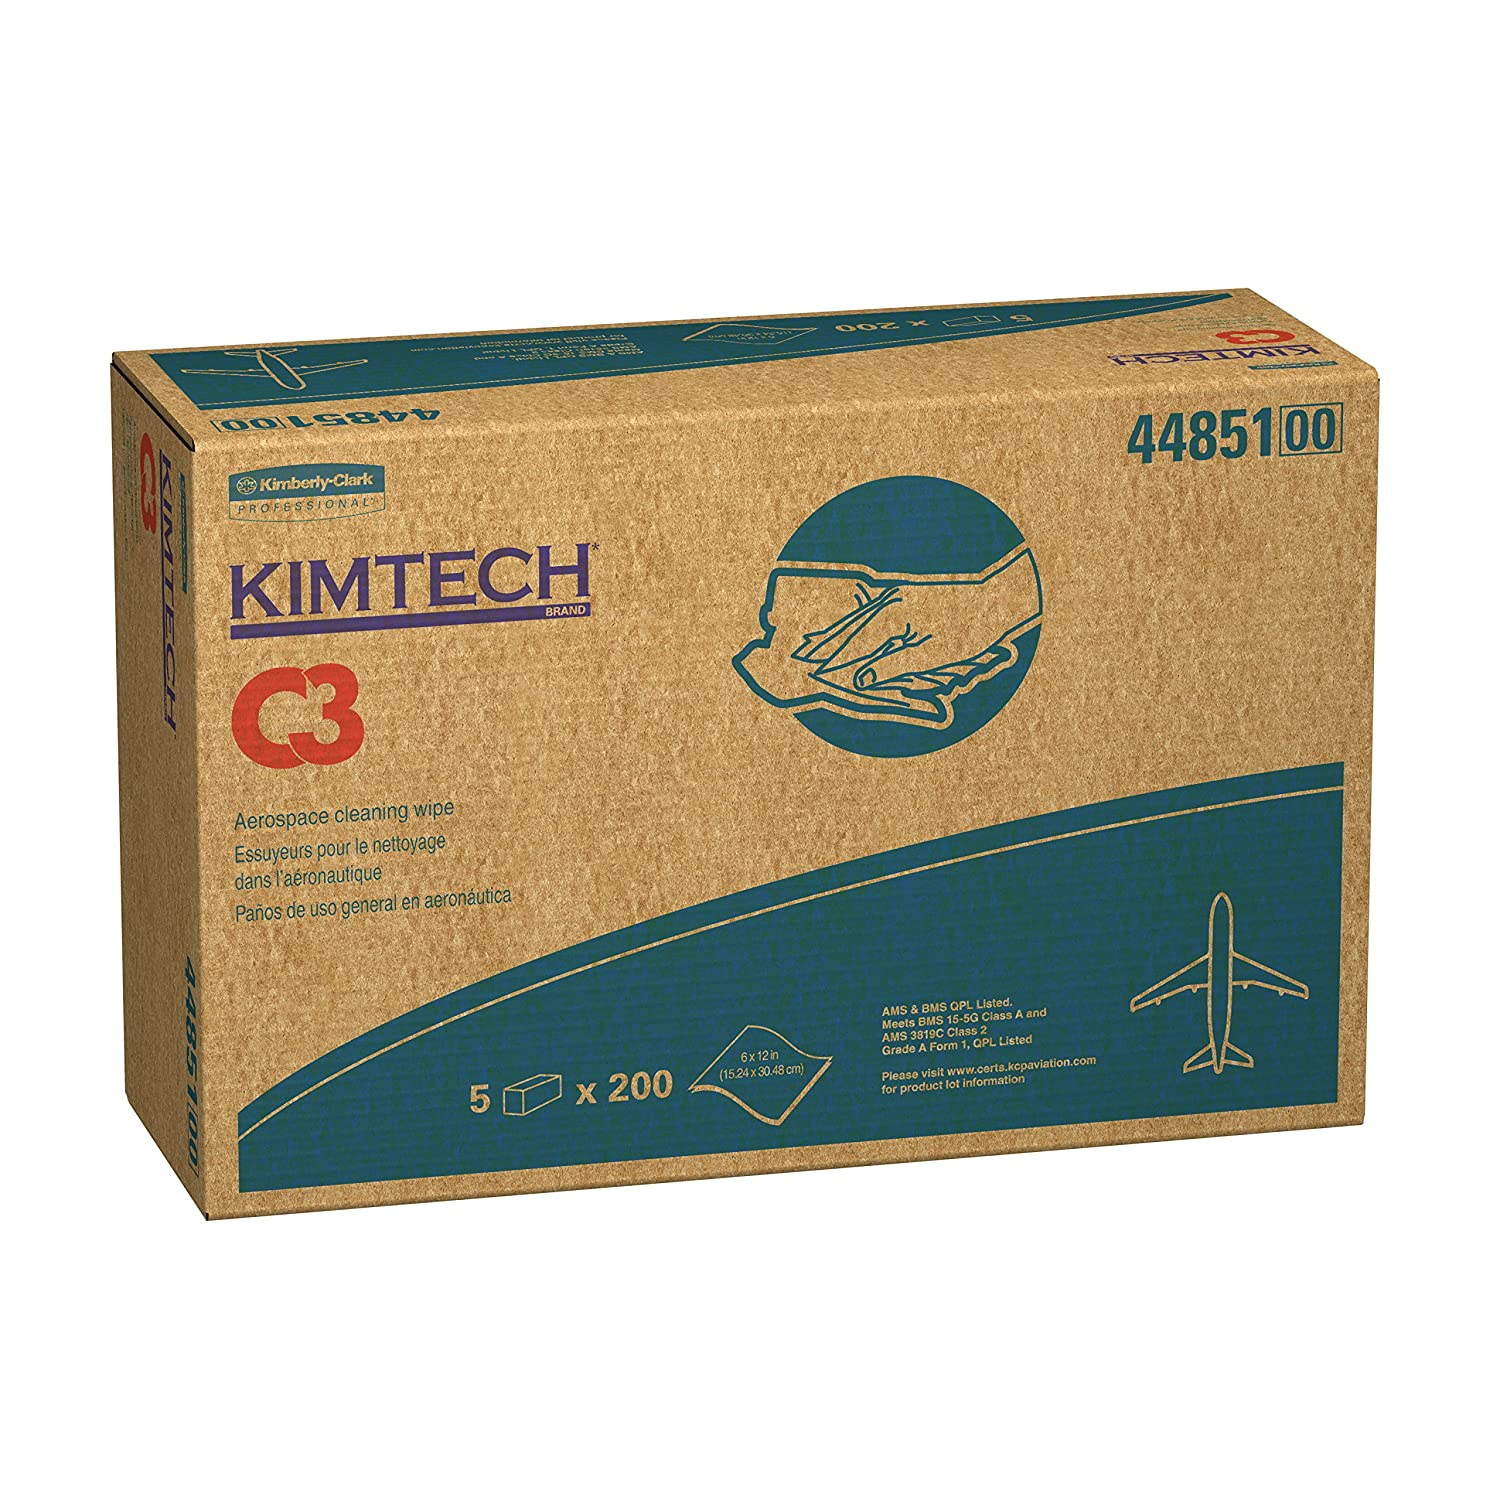 "Kimtech C3 Aviation Cleaning Wipes 44851 Surface Prep Wiping Cleaning Solutions Solvent Wipers 6 x 12"" White 1 000 Flat Sheets Case 5 Packs of 200"